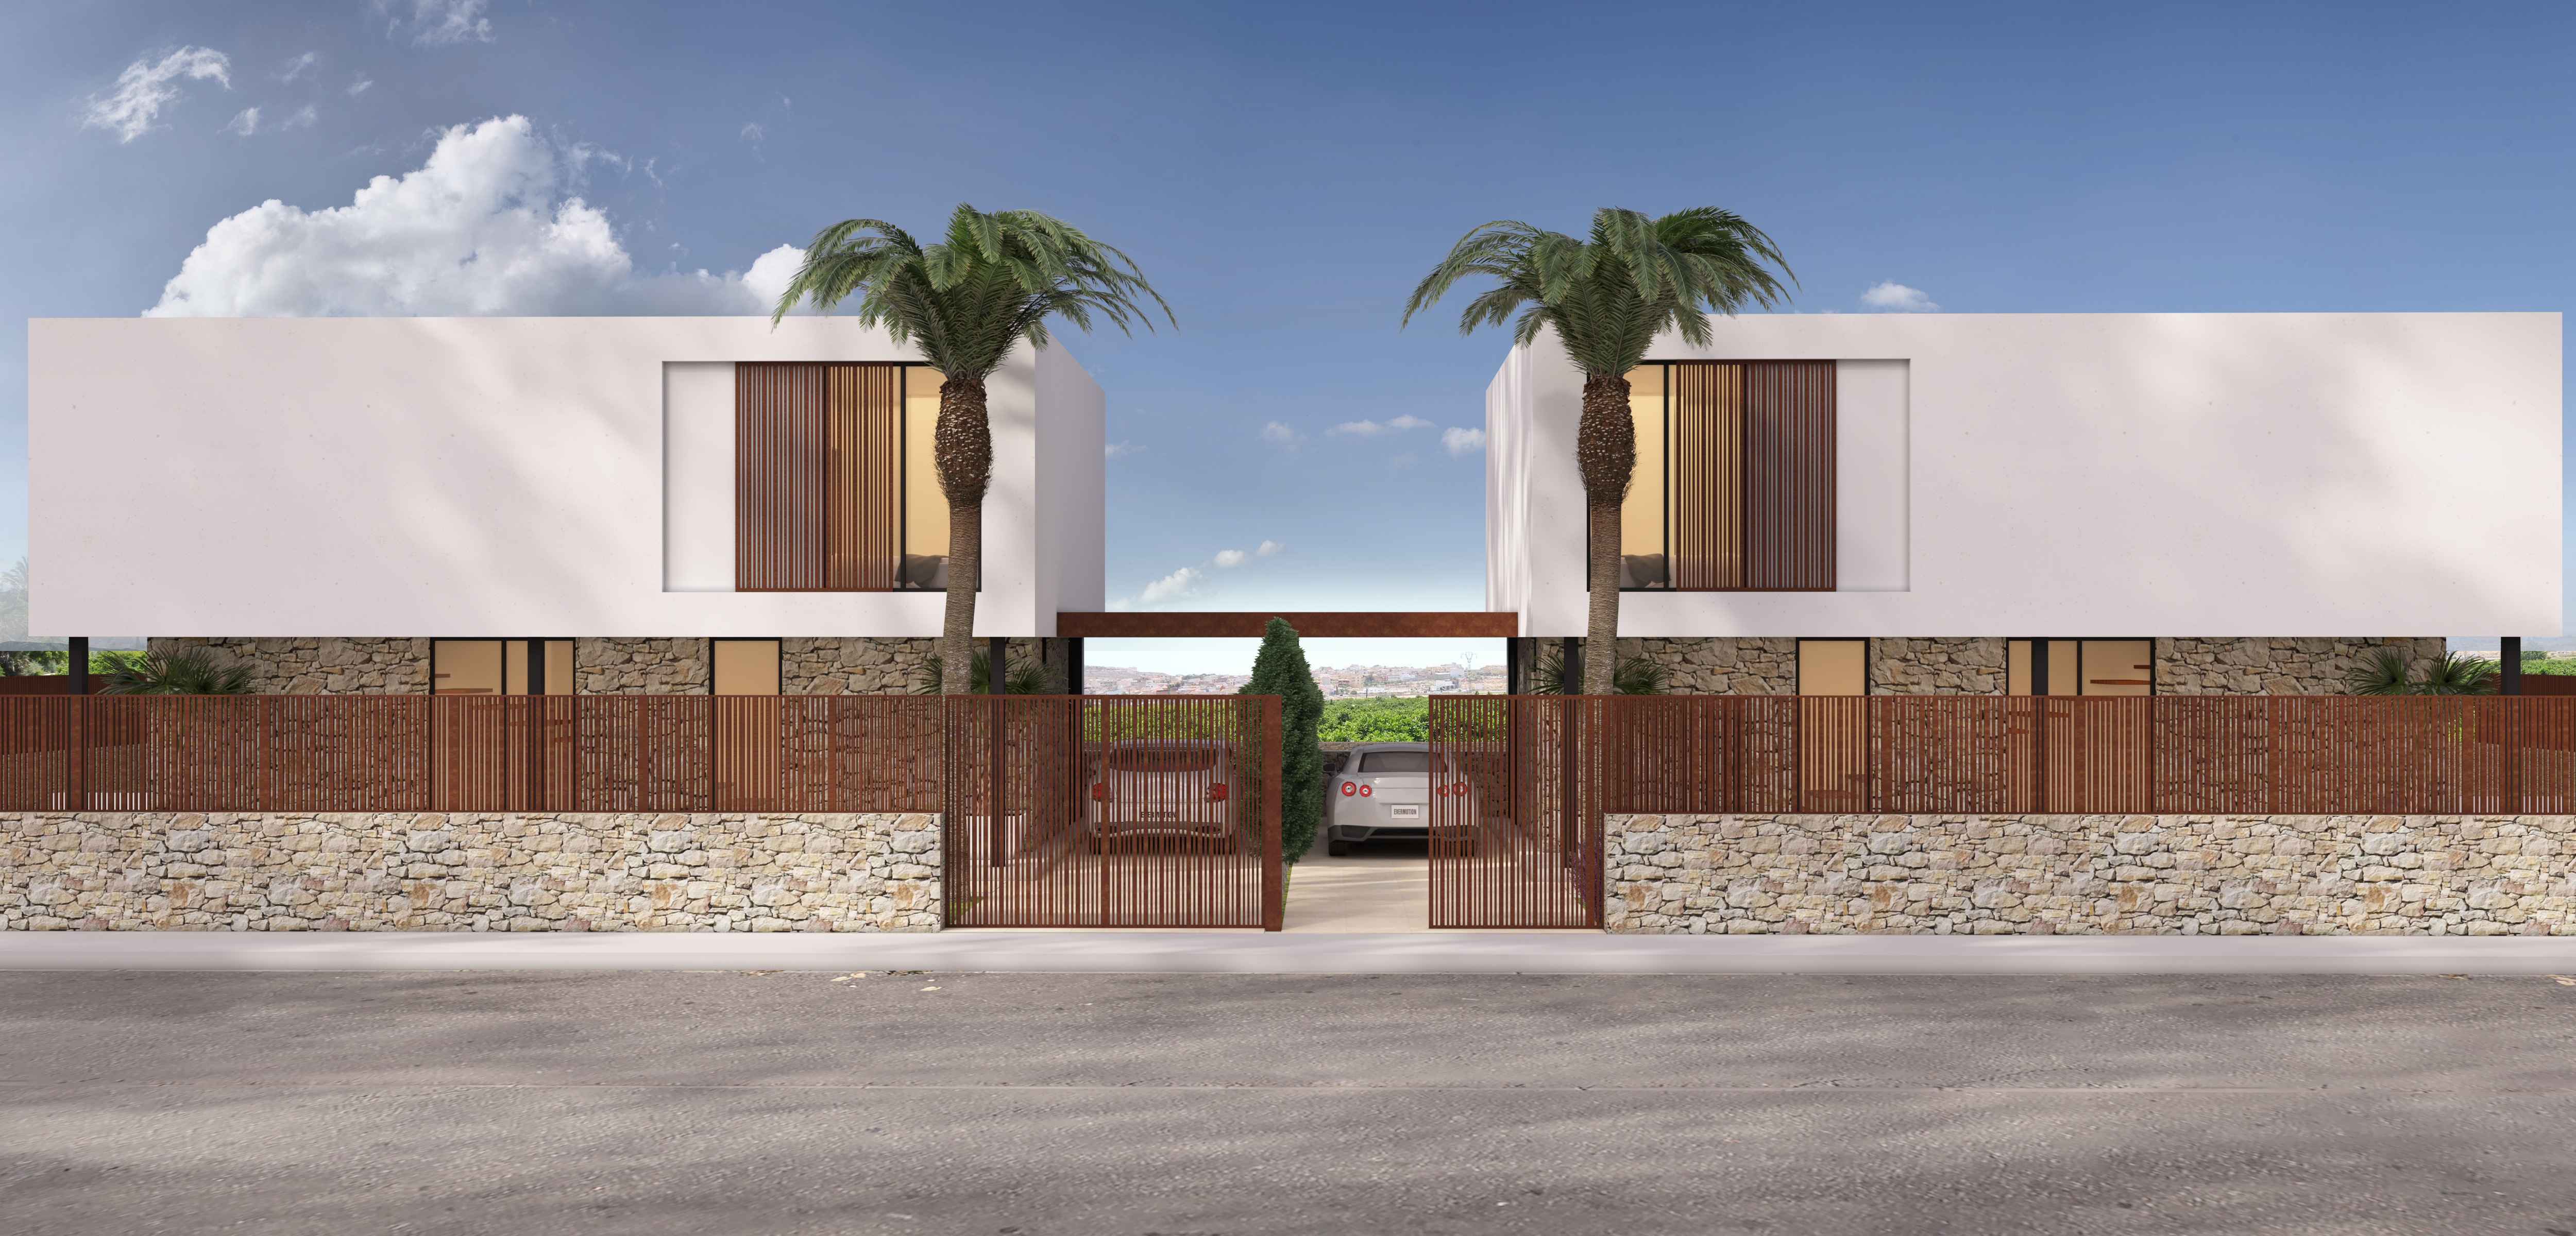 Exclusive villa in Benijofar with 5 bedrooms and 4 bathrooms